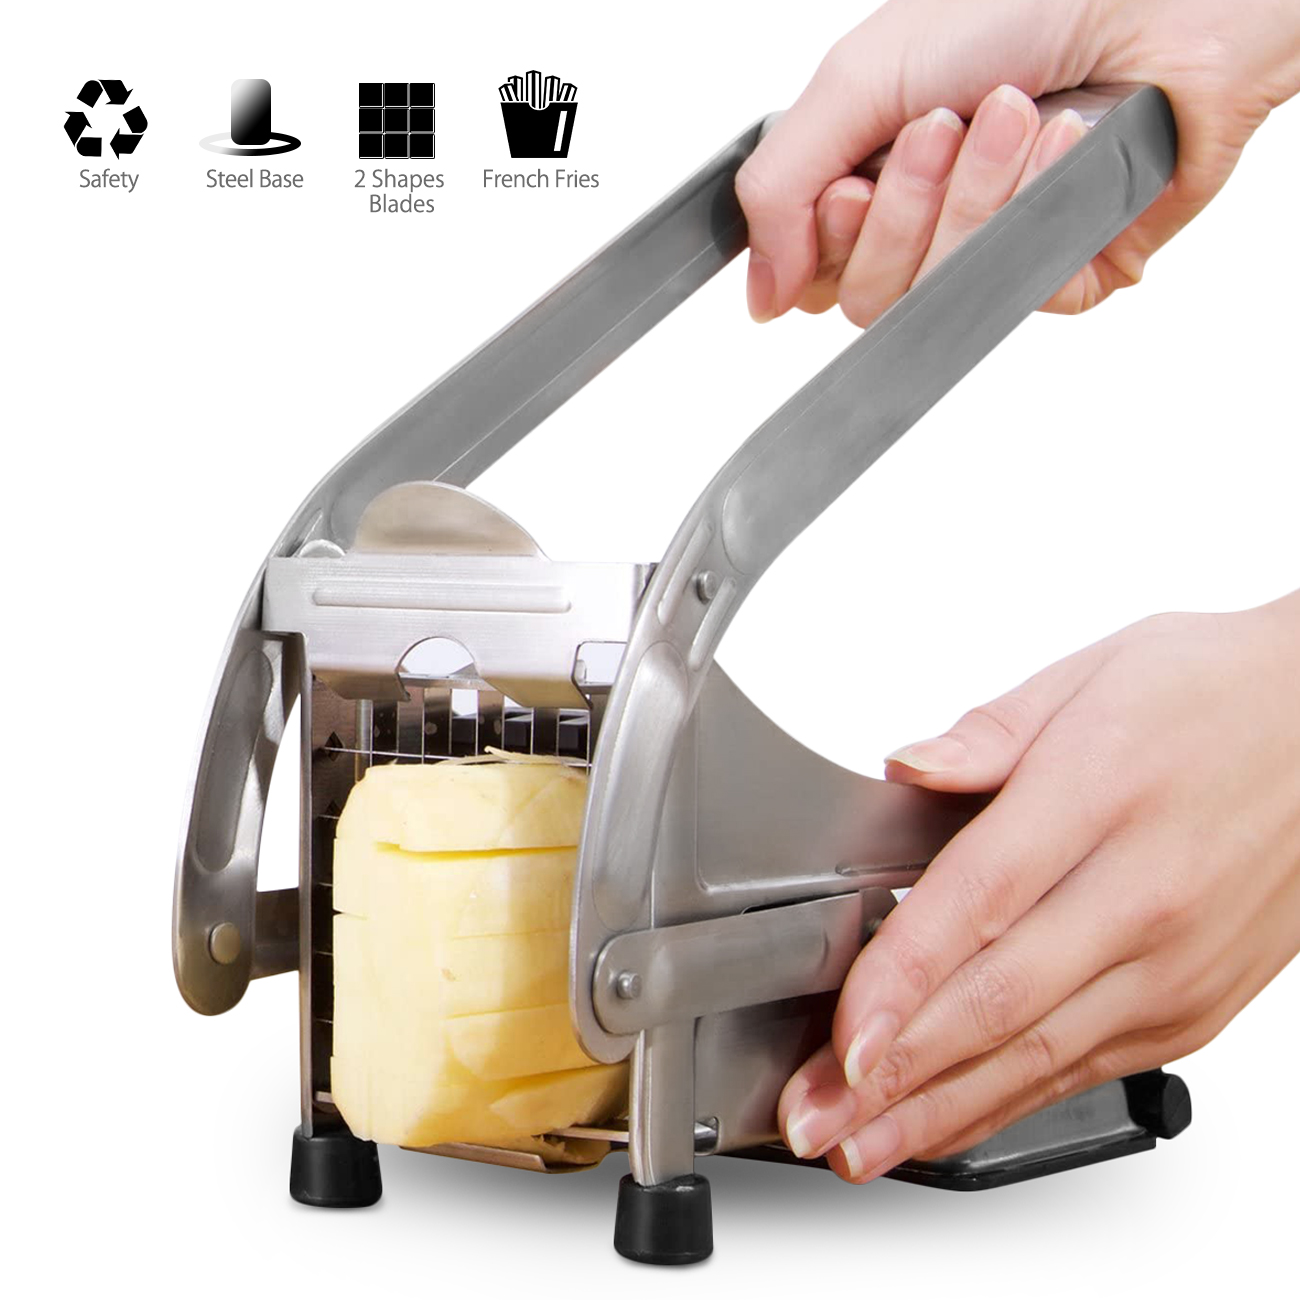 Stainless Steel French Fry Cutter,Vegetable and Potato Slicer,with 2 Blade Size Cutter Option,Safe Slice Meal Pre Easy Install